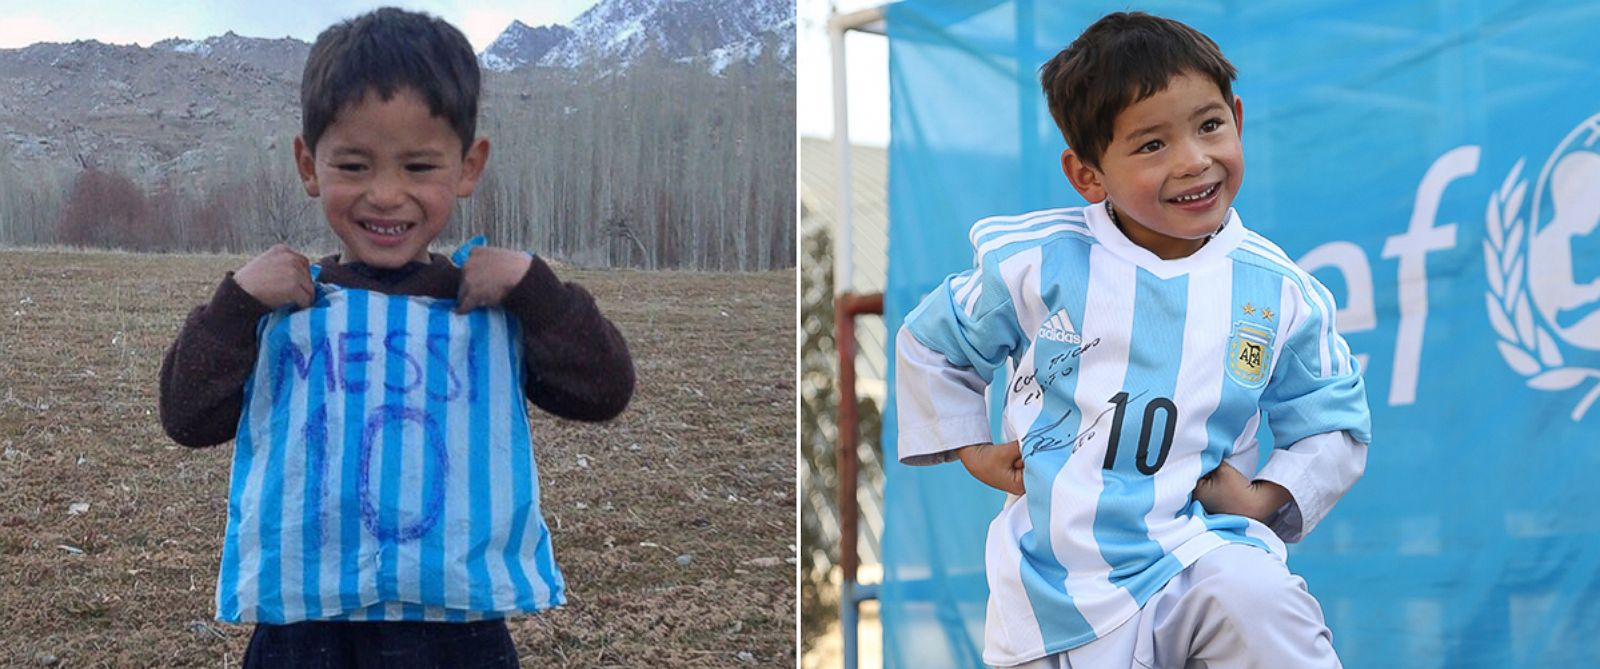 PHOTO: Murtaza Ahmadi of Afghanistan had a Leo Messi jersey made from a plastic bag, and after his photo went viral, he received a real jersey signed by Leo Messi.